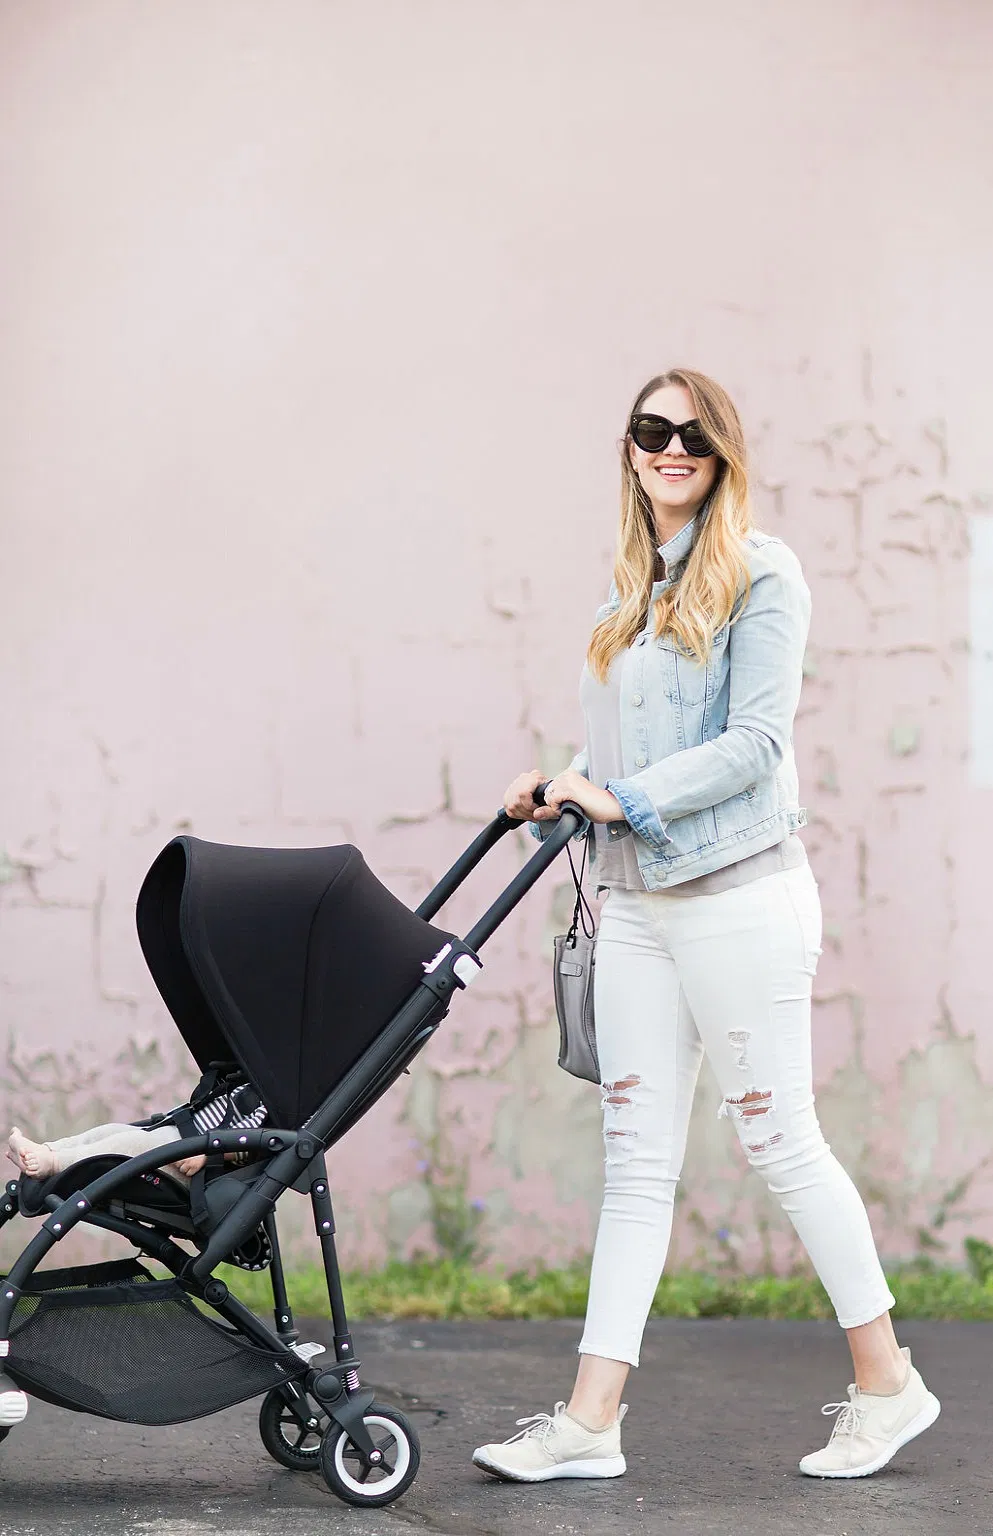 Bugaboo Bee5 Stroller Review in 2020 Fashion lifestyle